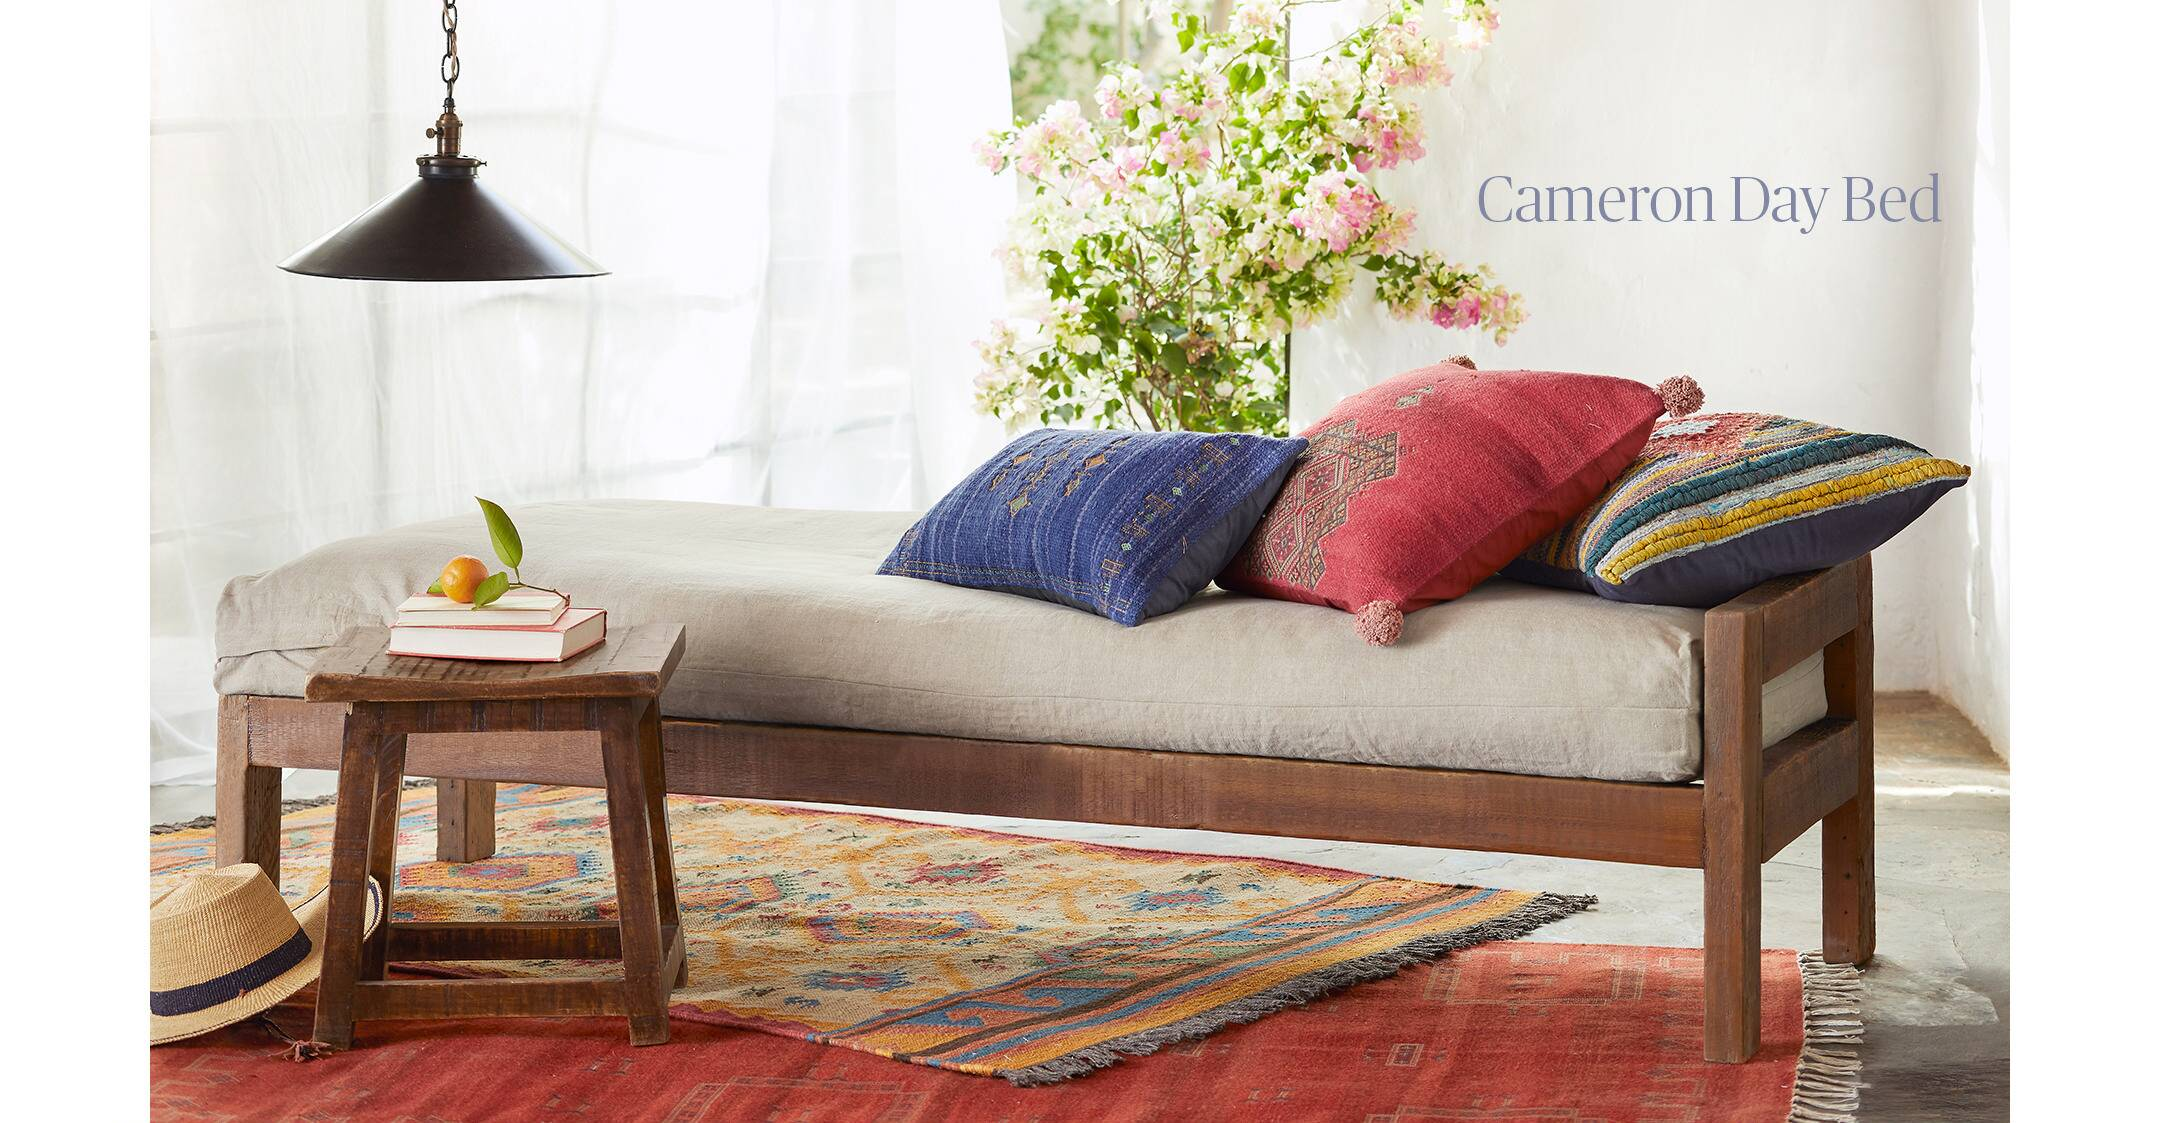 Cameron Day Bed